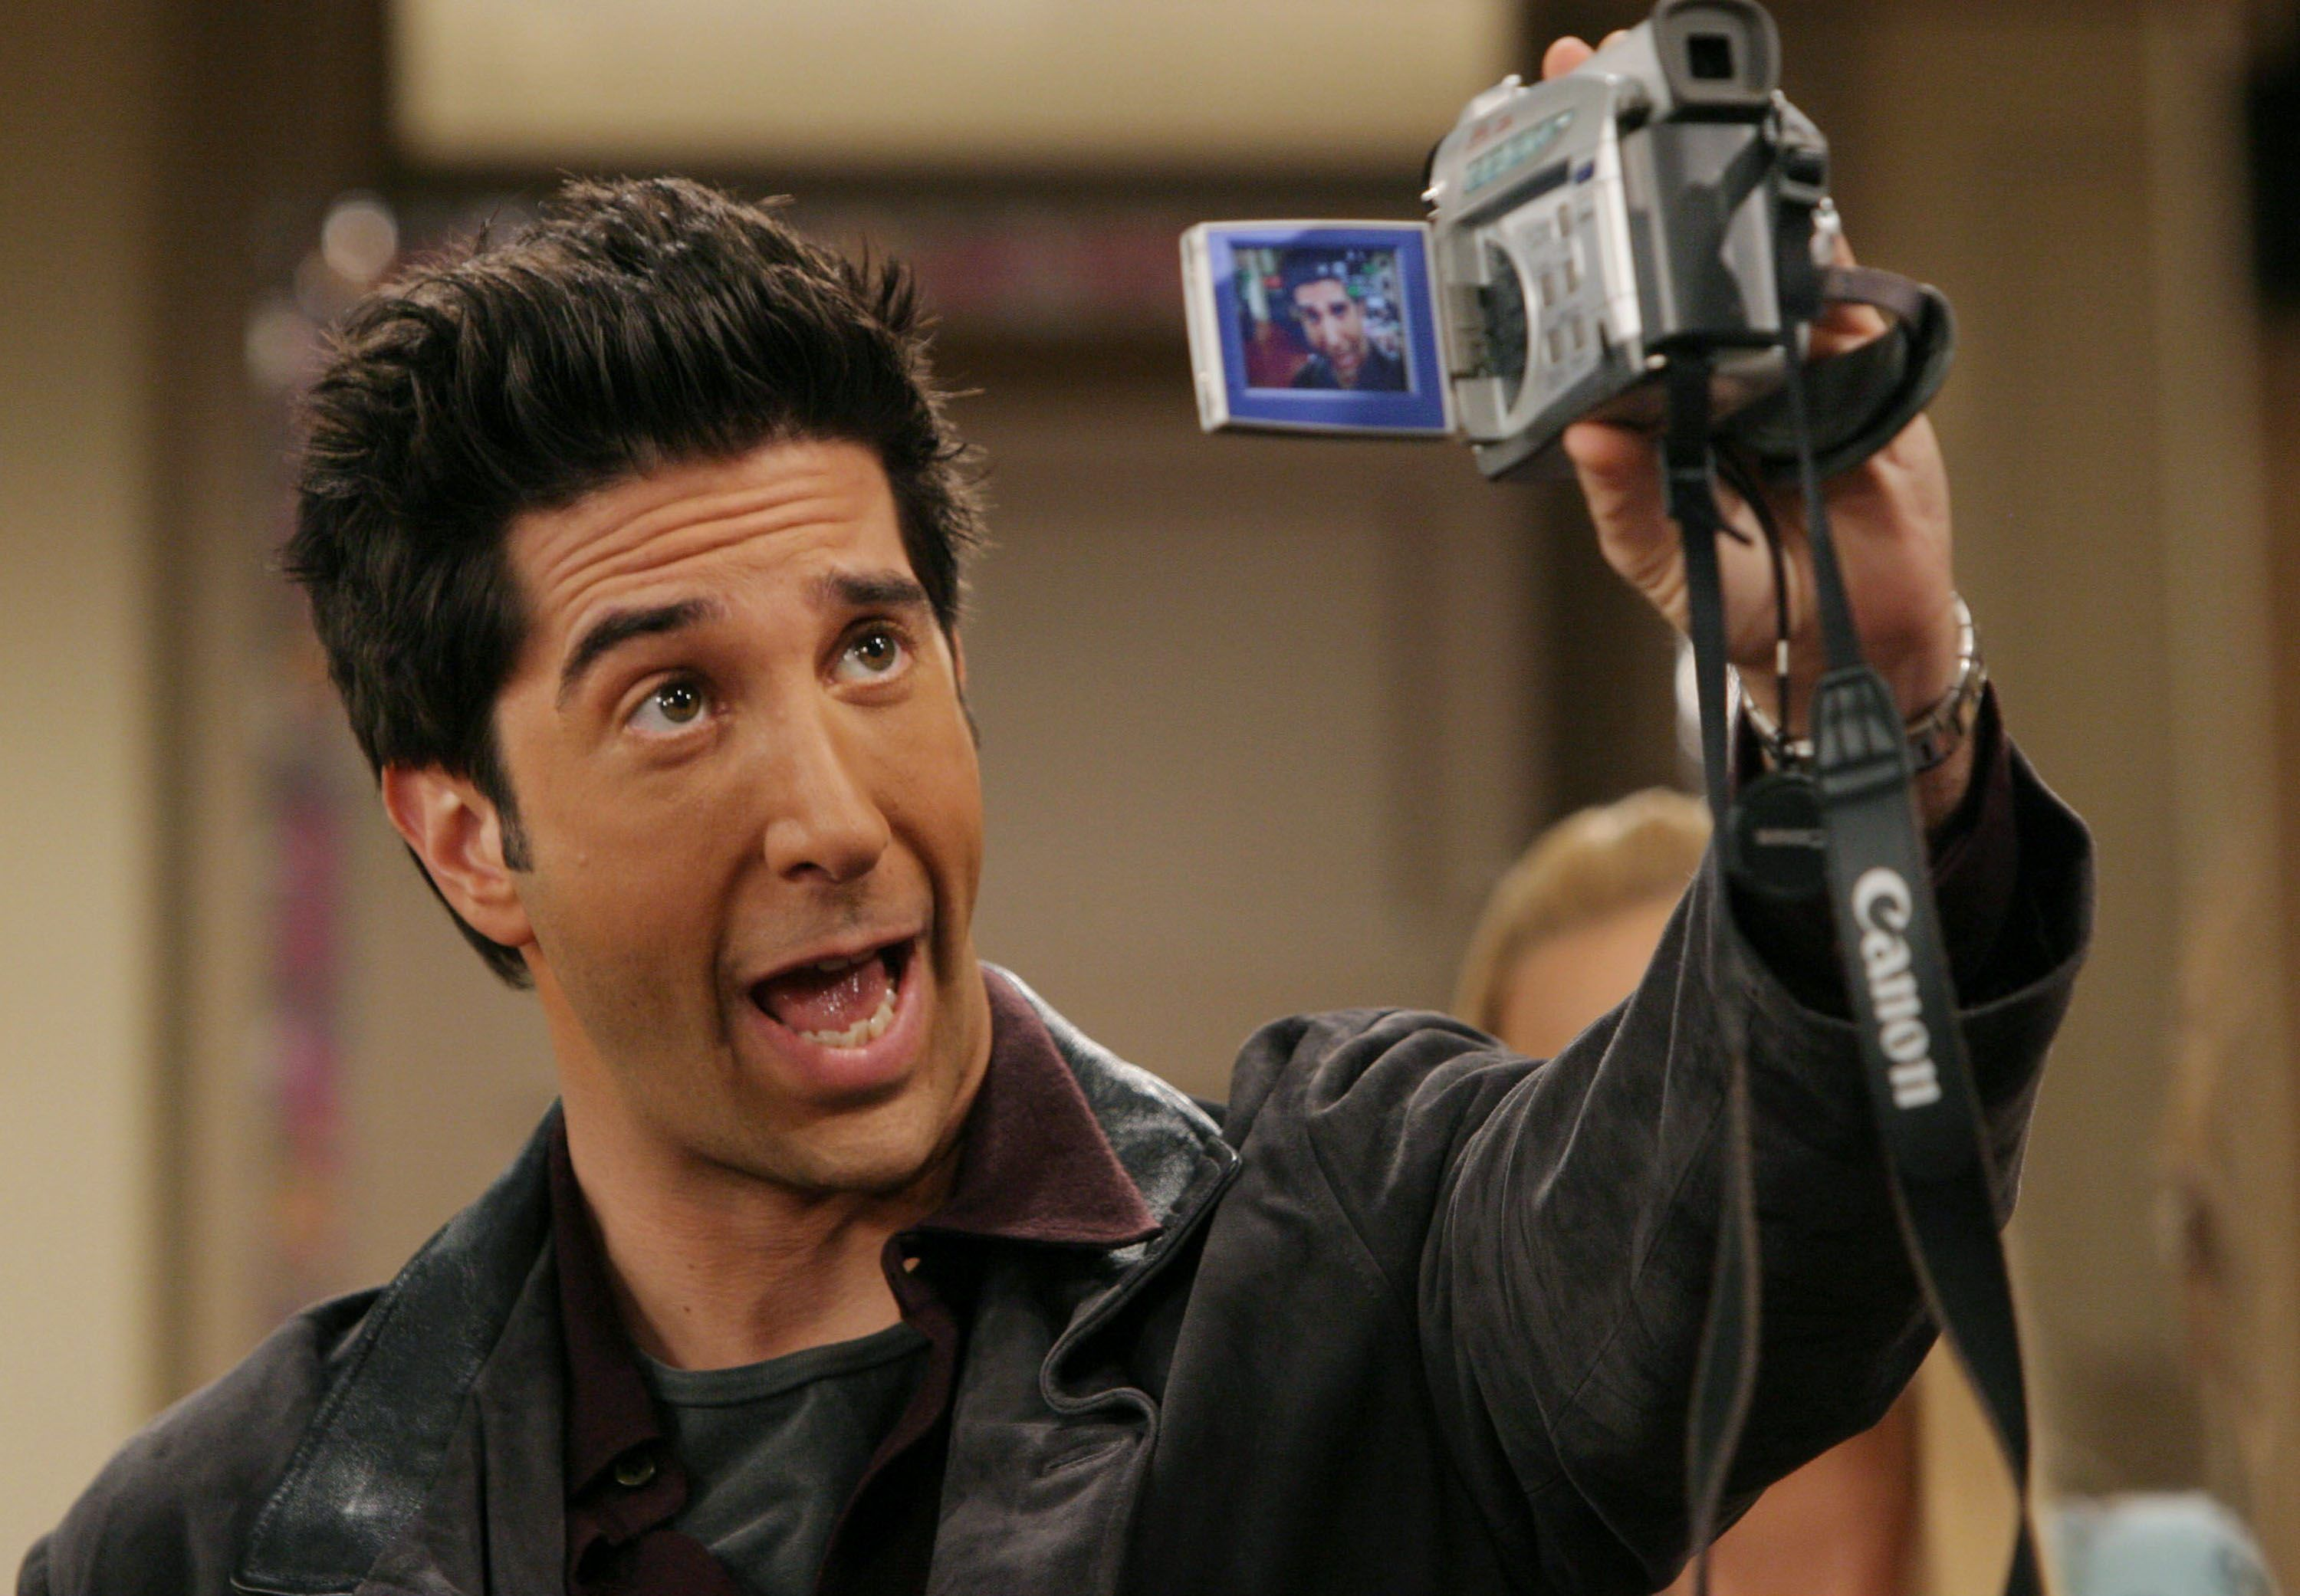 Ross Geller portrayed by famous actor David Schwimmer / Getty Images